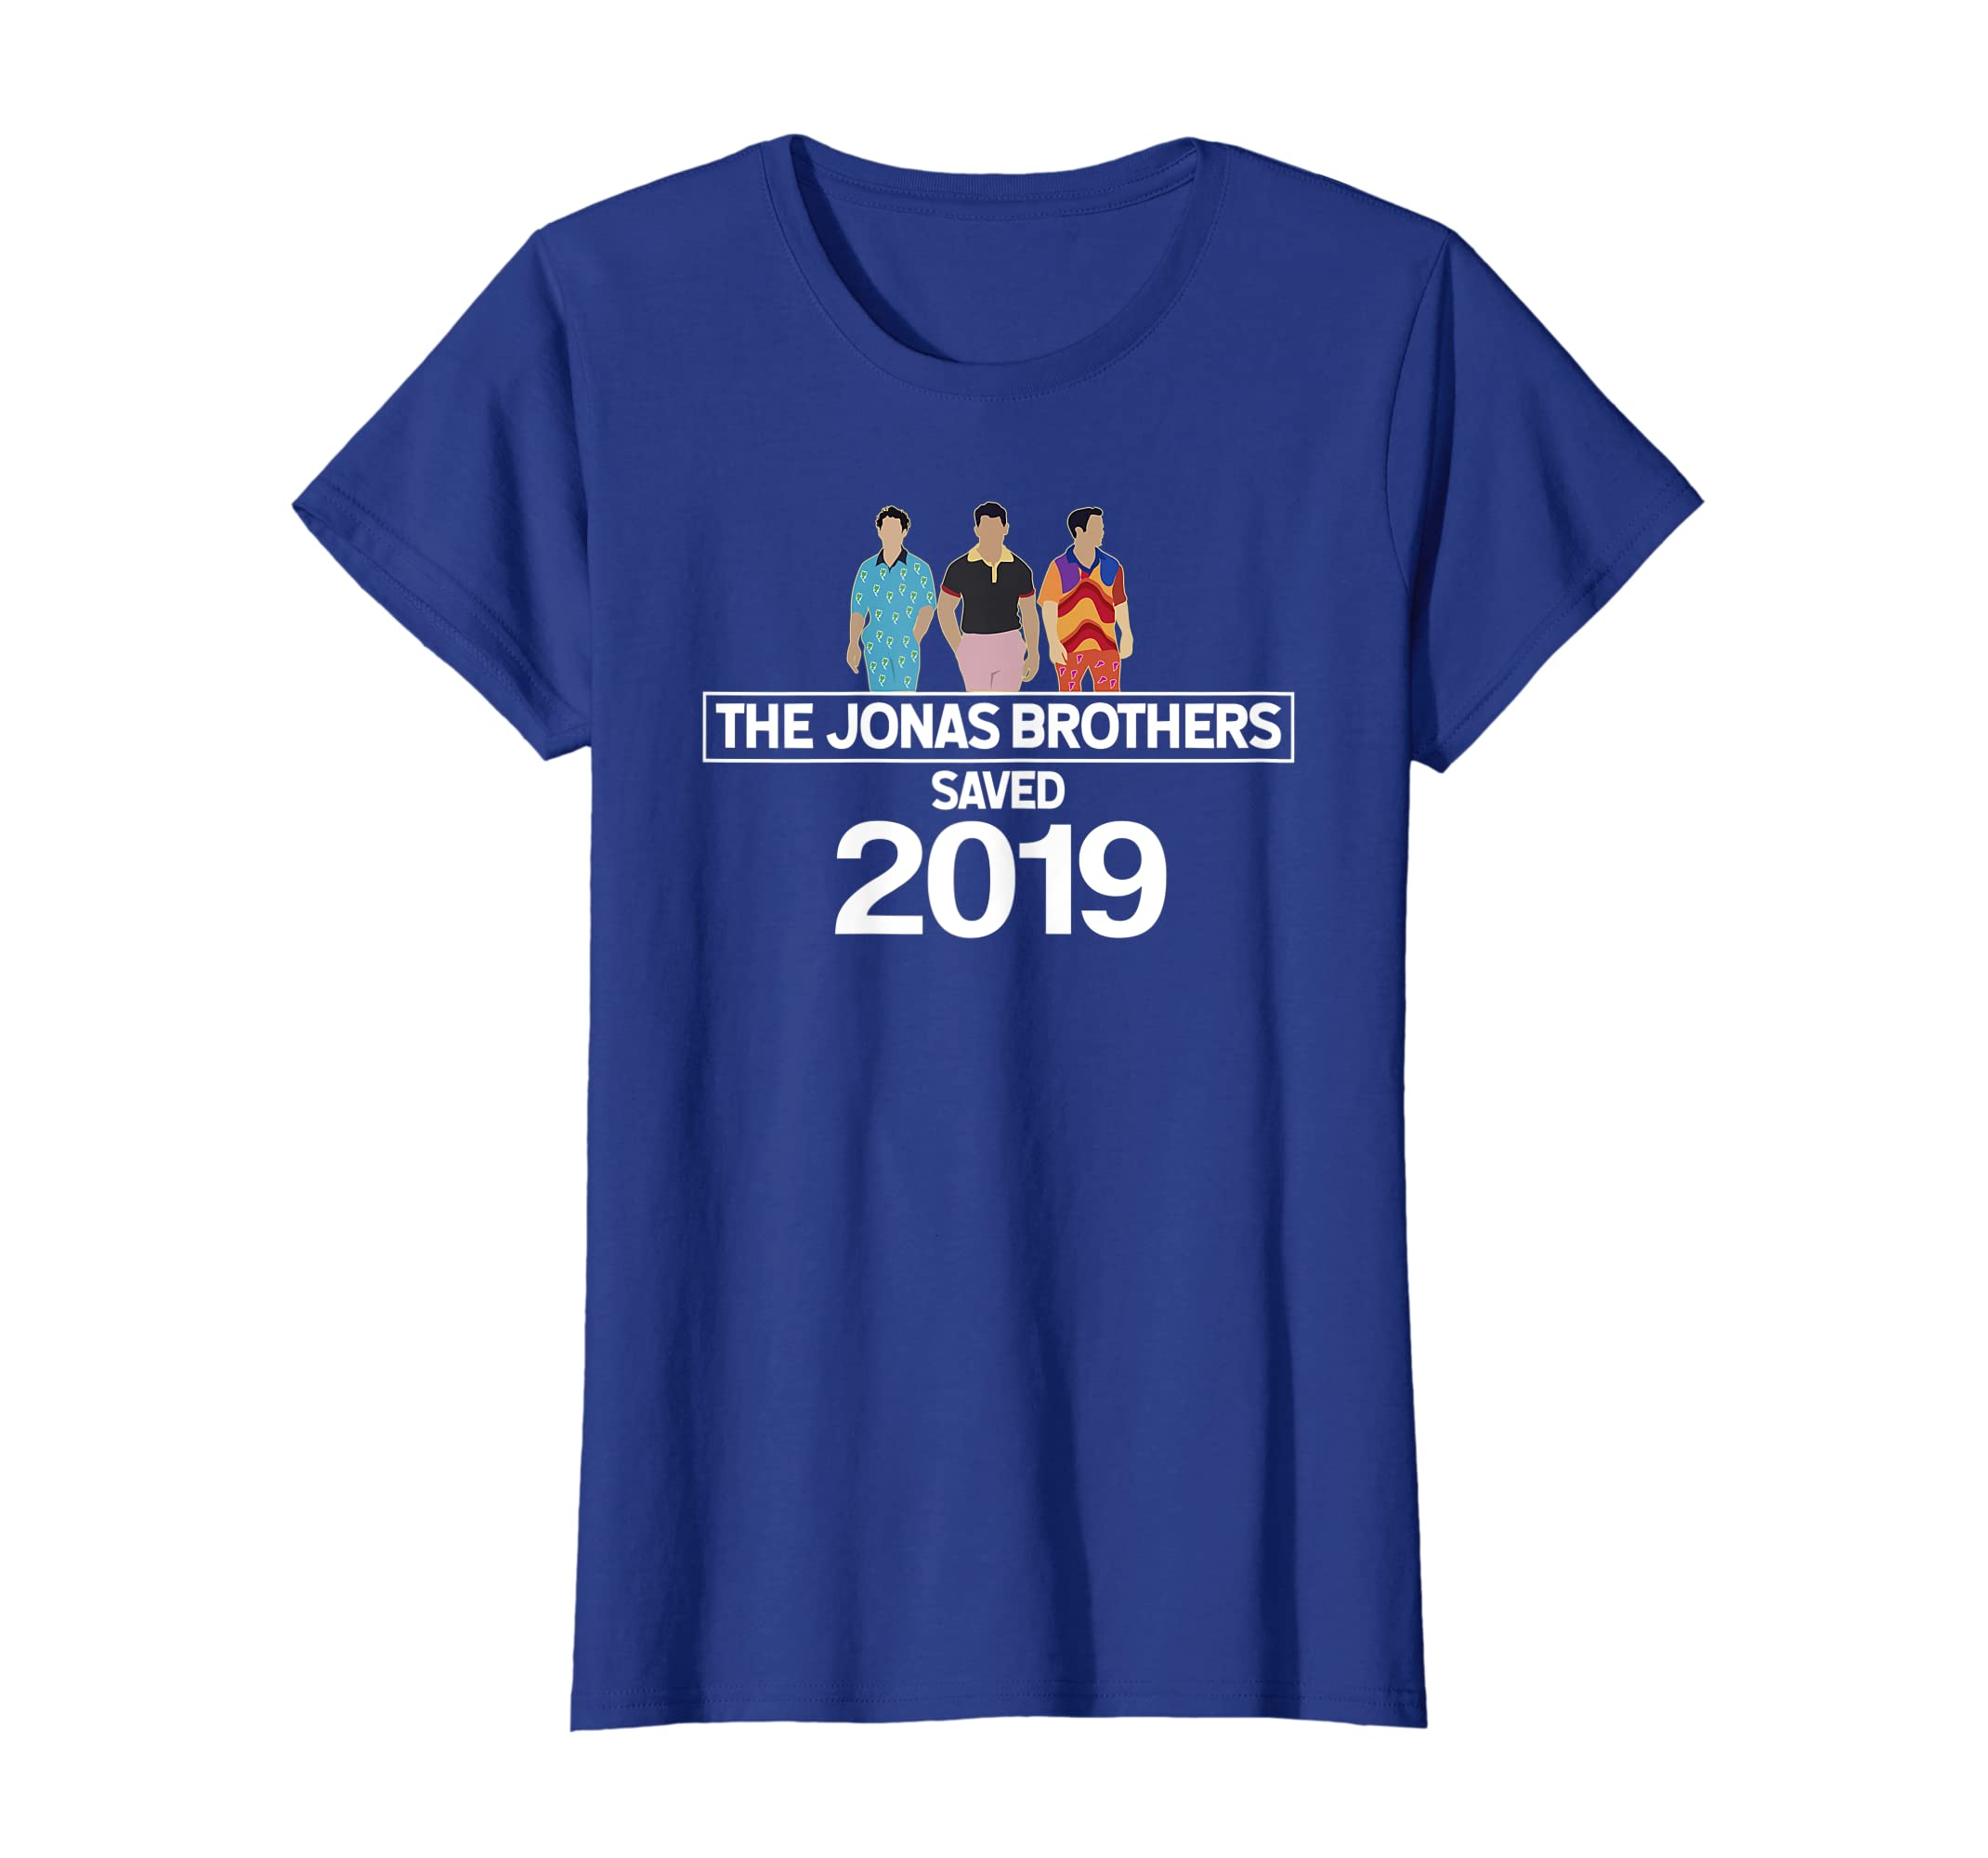 a17181807 Amazon.com: The jonas brothers Saved 2019 t-shirt for music lovers: Clothing